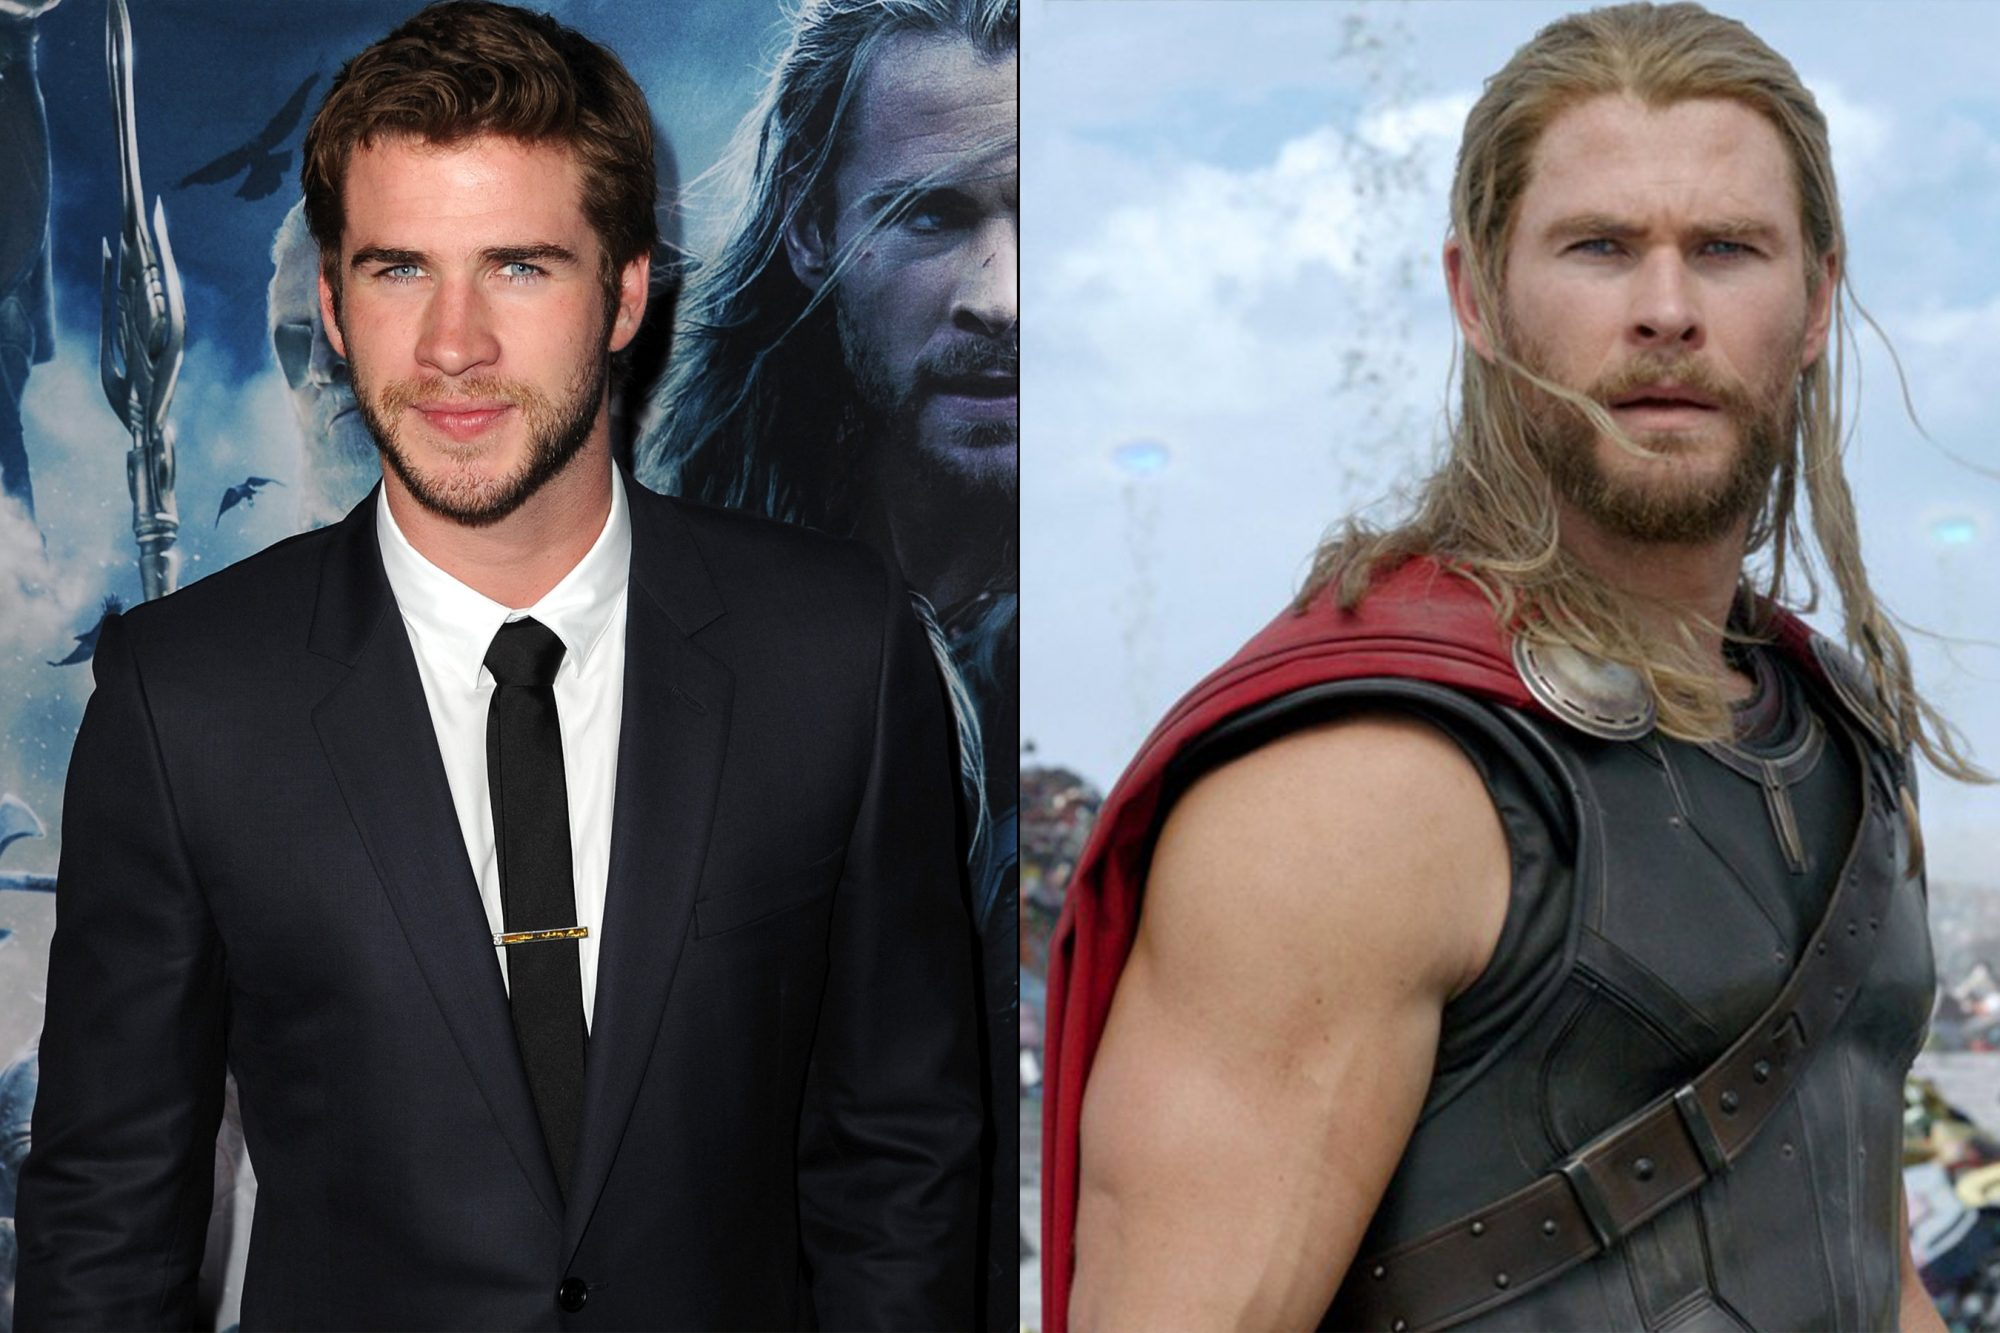 Liam Hemsworth in Thor